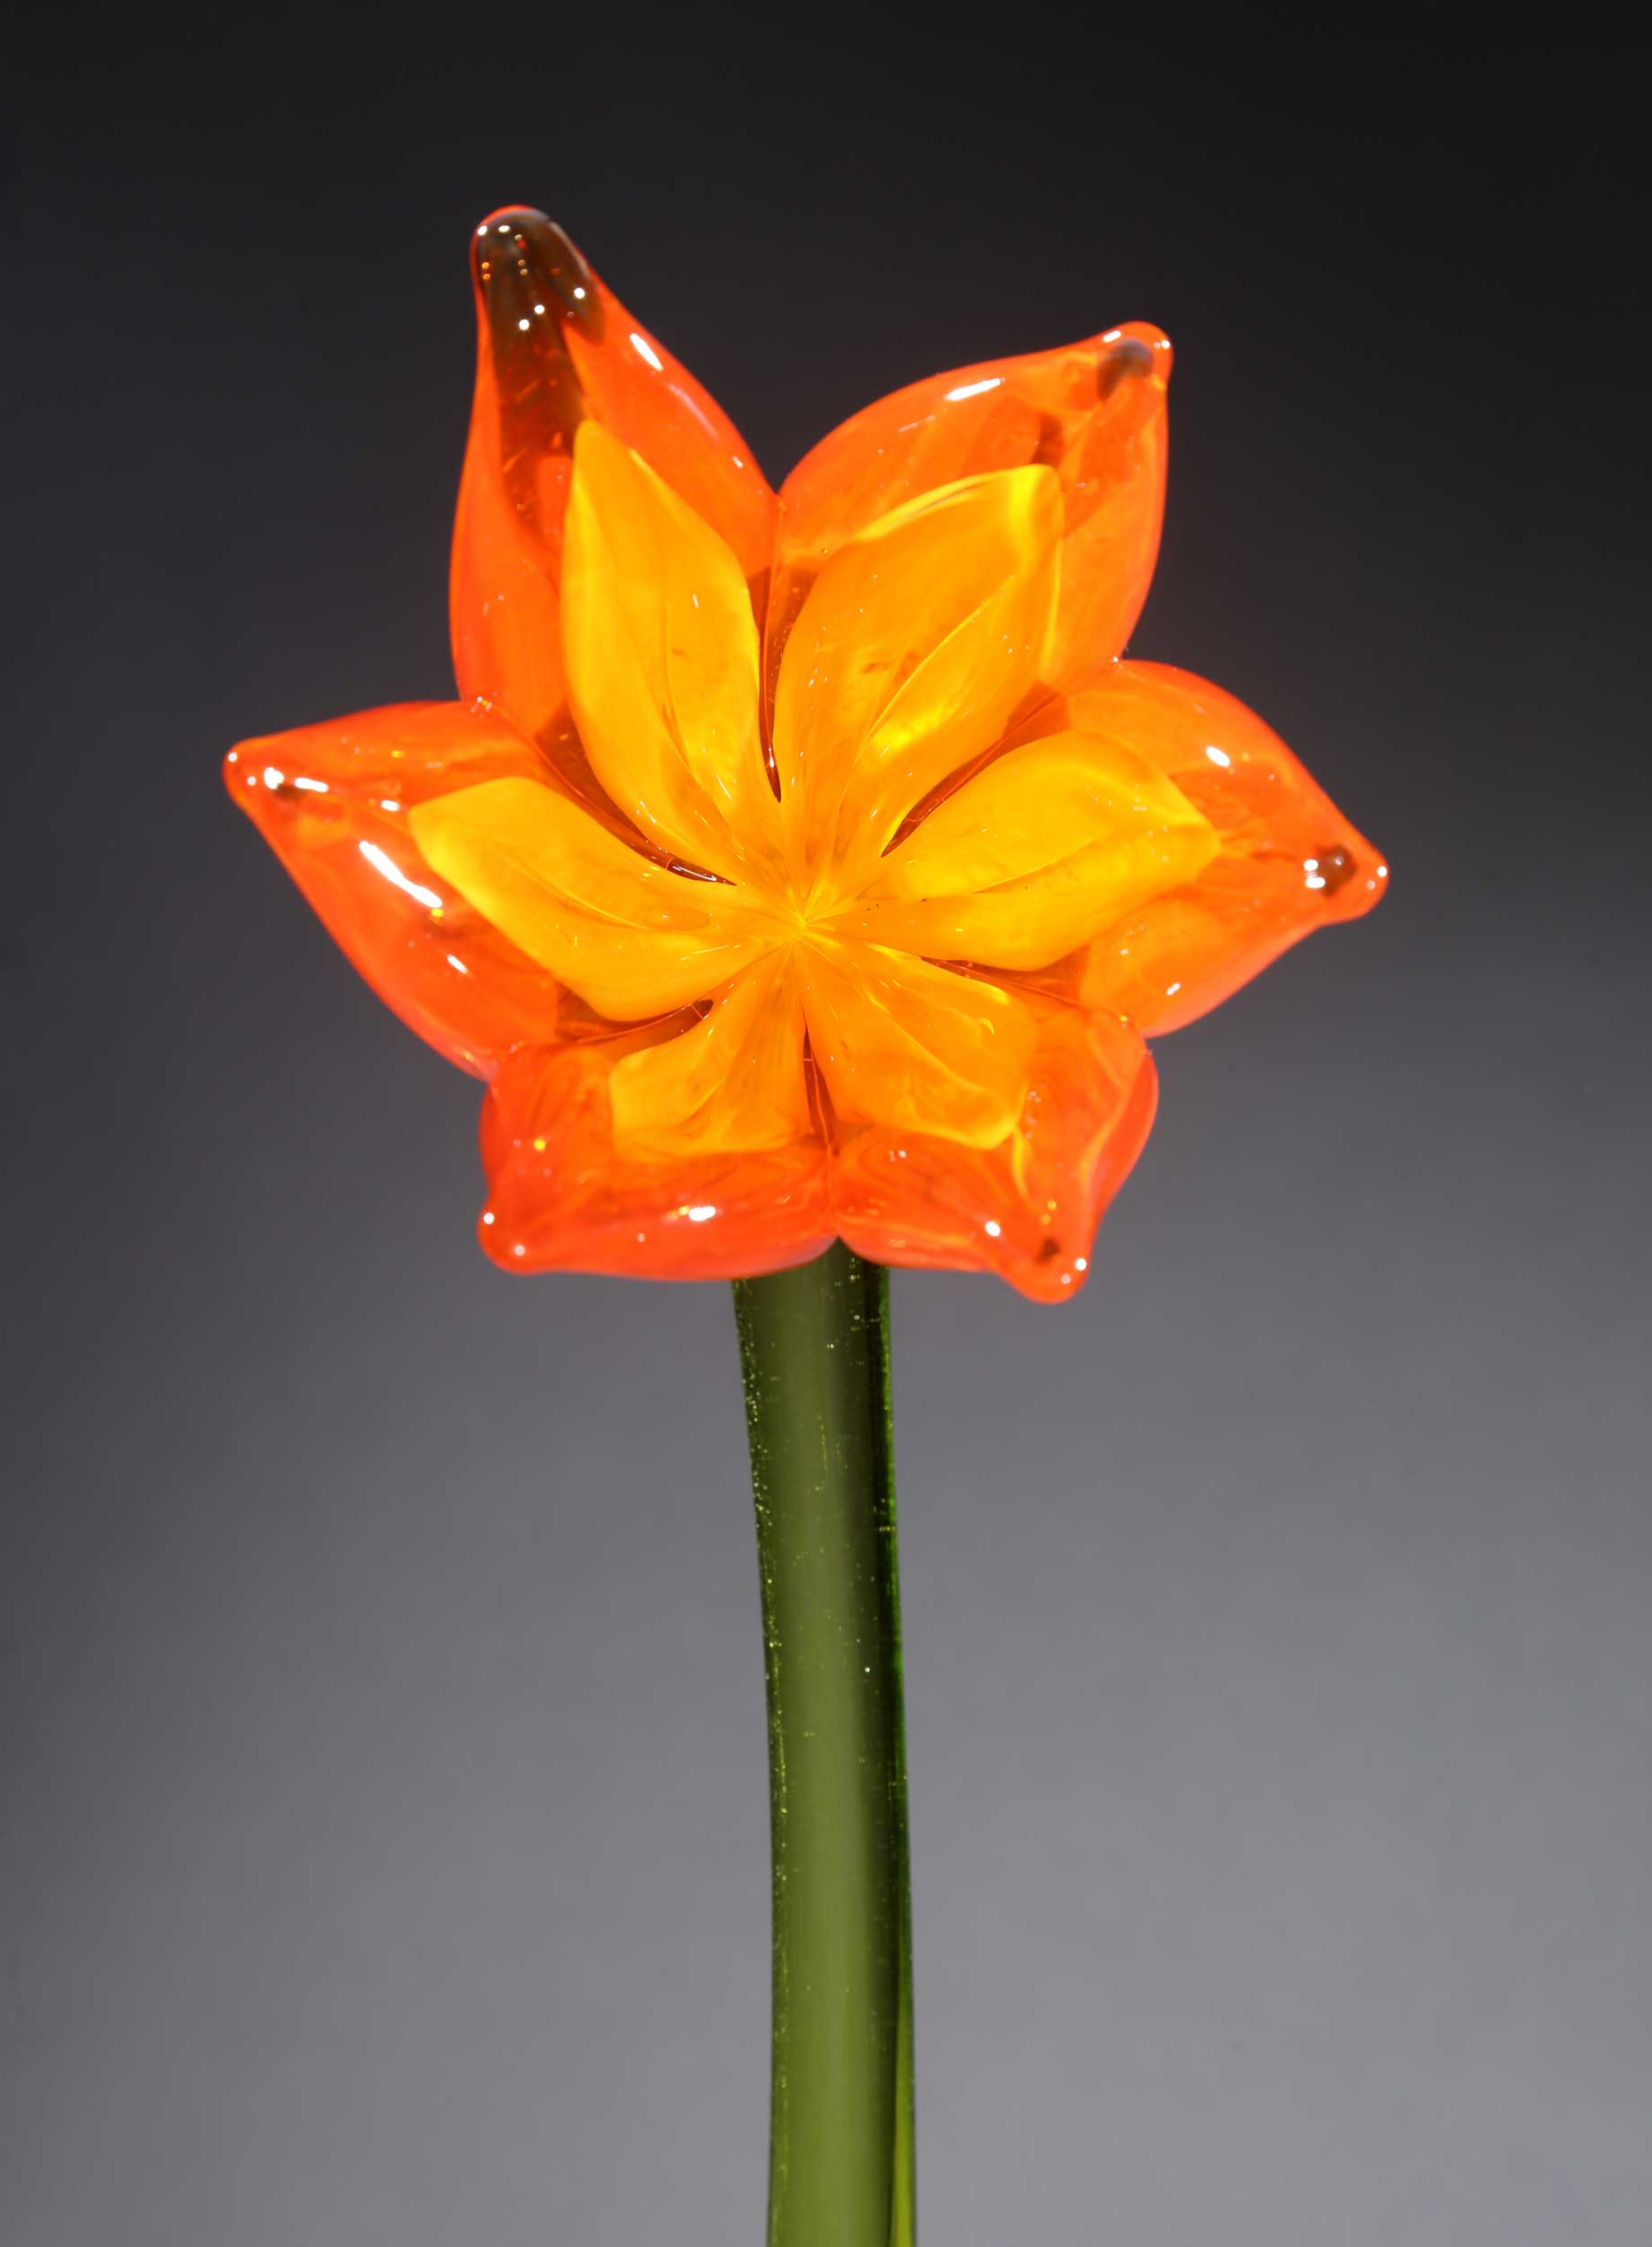 Flower Tulip Orange Yellow